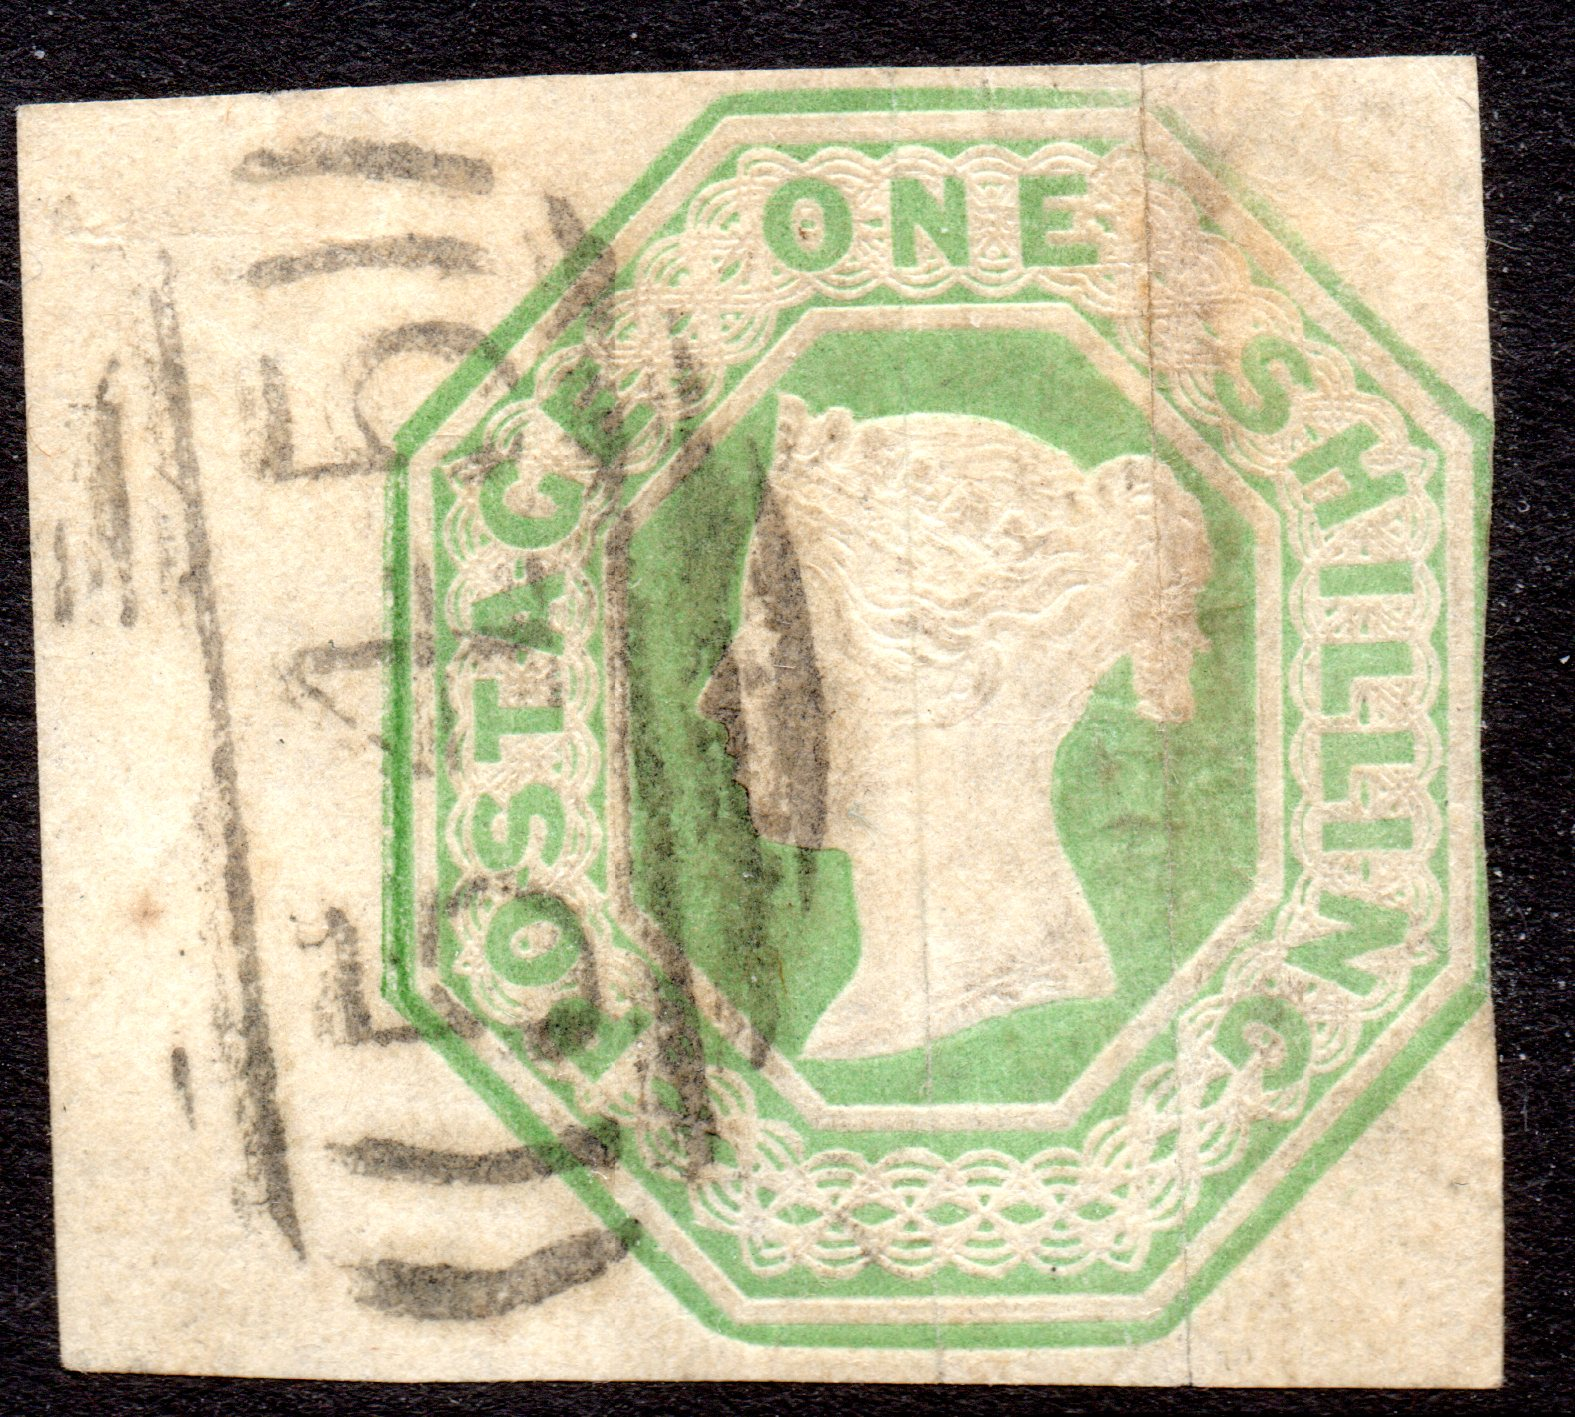 1854 1s Pale Green Embossed Massive Left Margin Neat '545' Newcastle Numeral